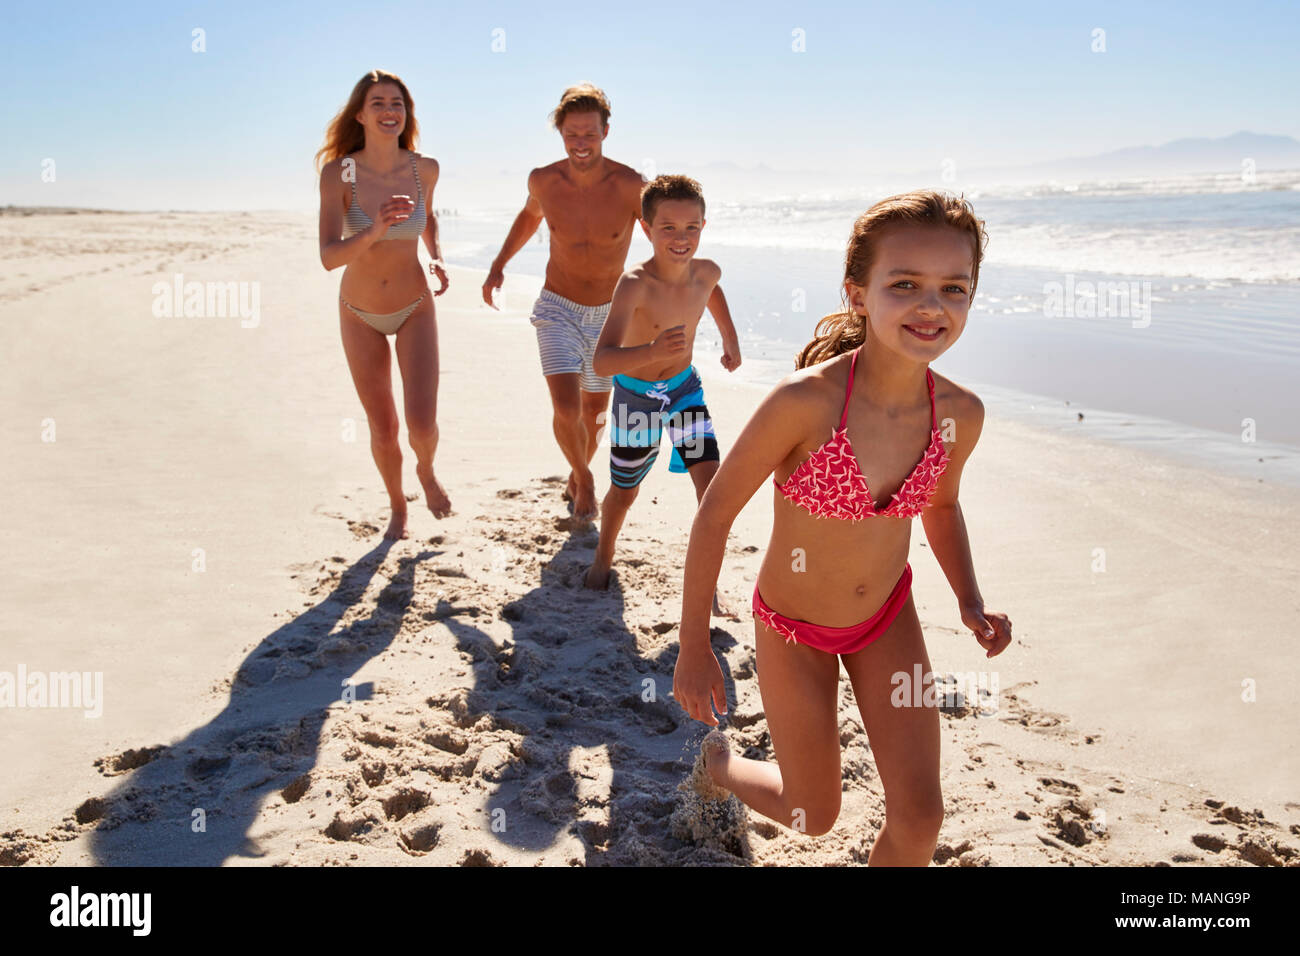 Family On Summer Vacation Running Along Beach Together Stock Photo Alamy